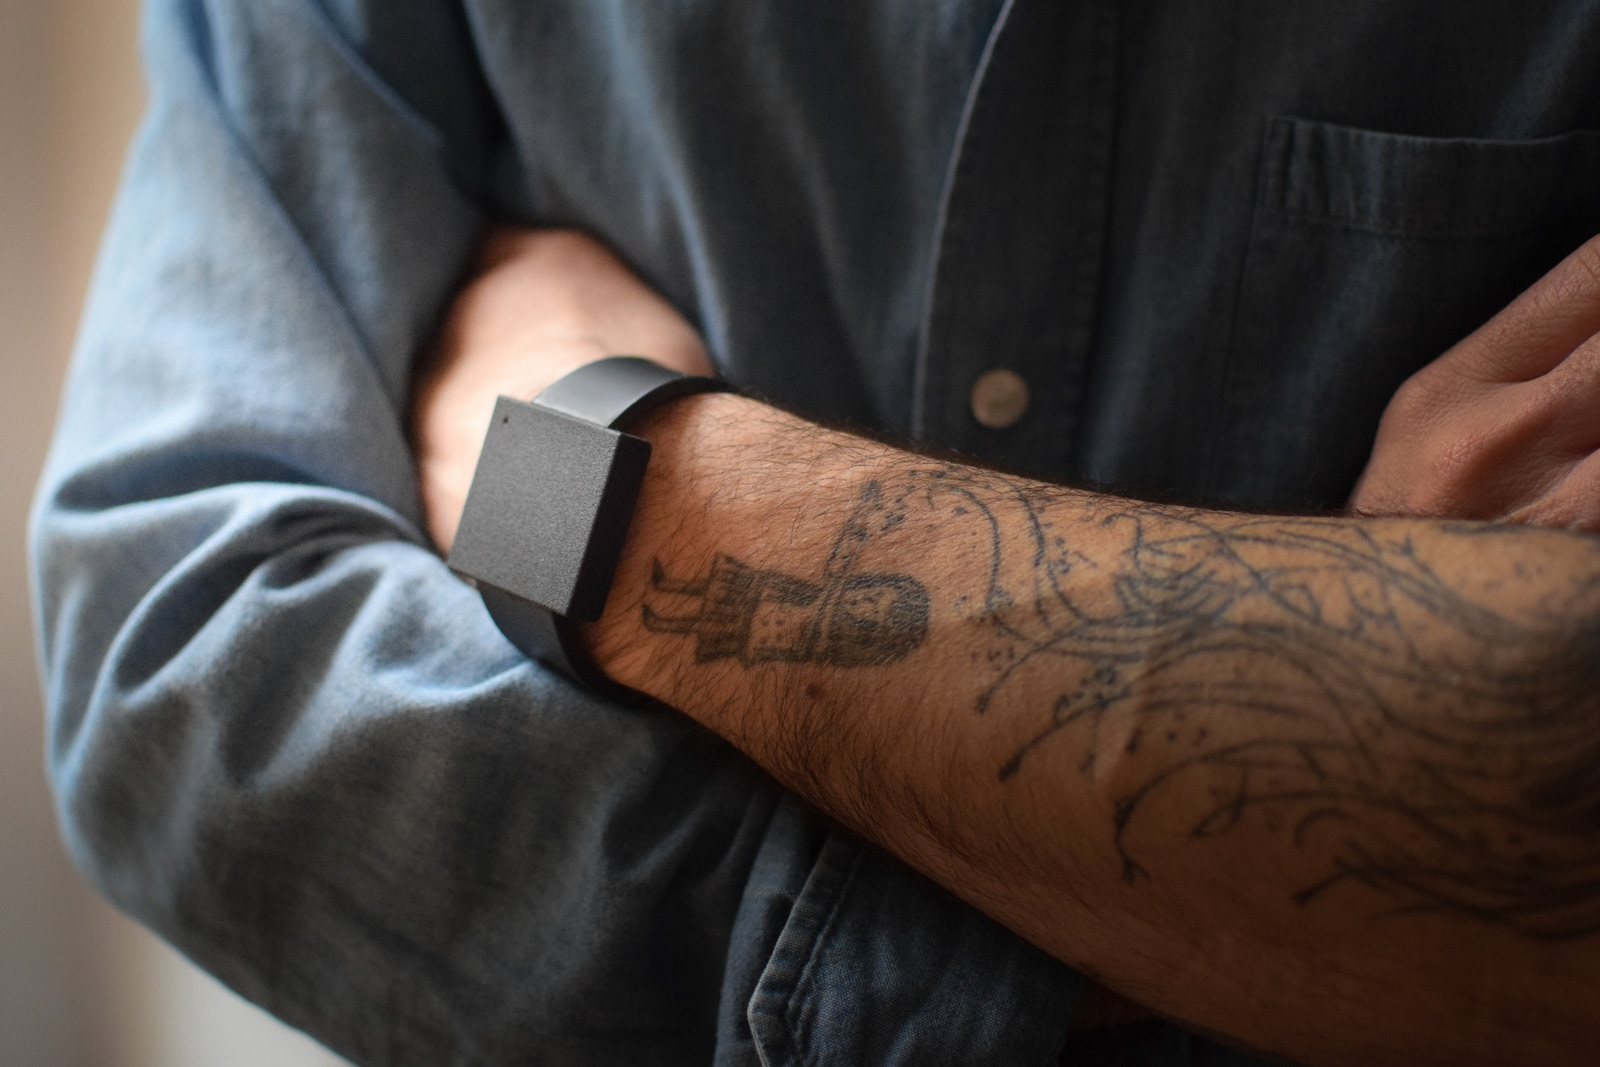 The Basslet: a wearable subwoofer for your body